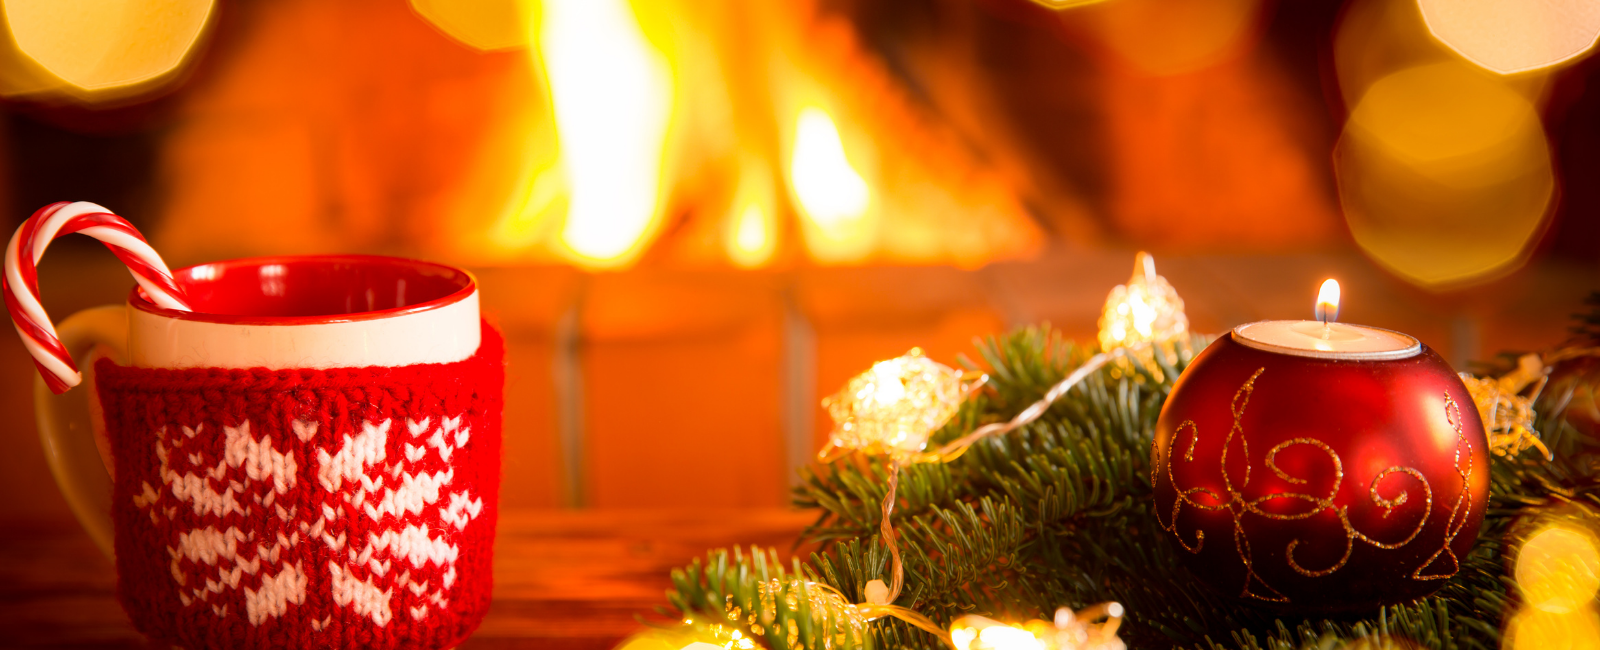 Holiday scene with fire in background.